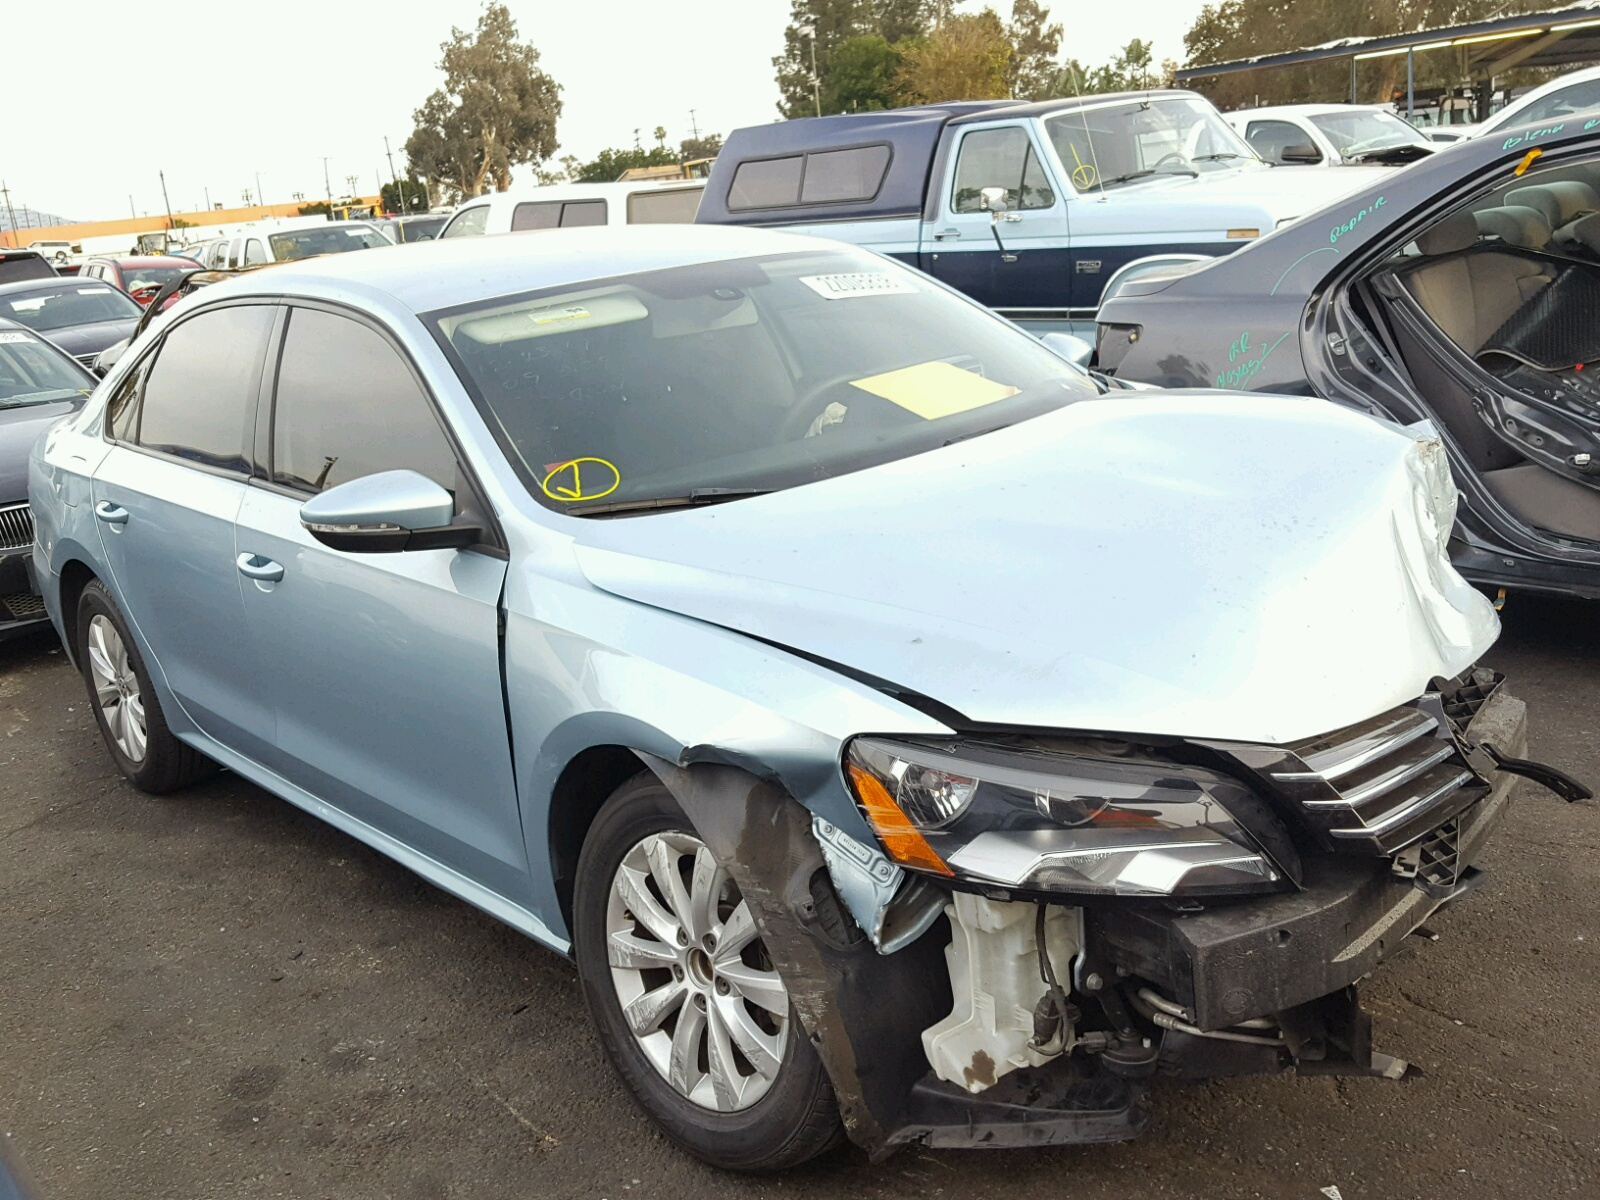 copart auctions sale en carfinder l view base jetta on lot gray in salvage left ca san online diego volkswagen certificate auto